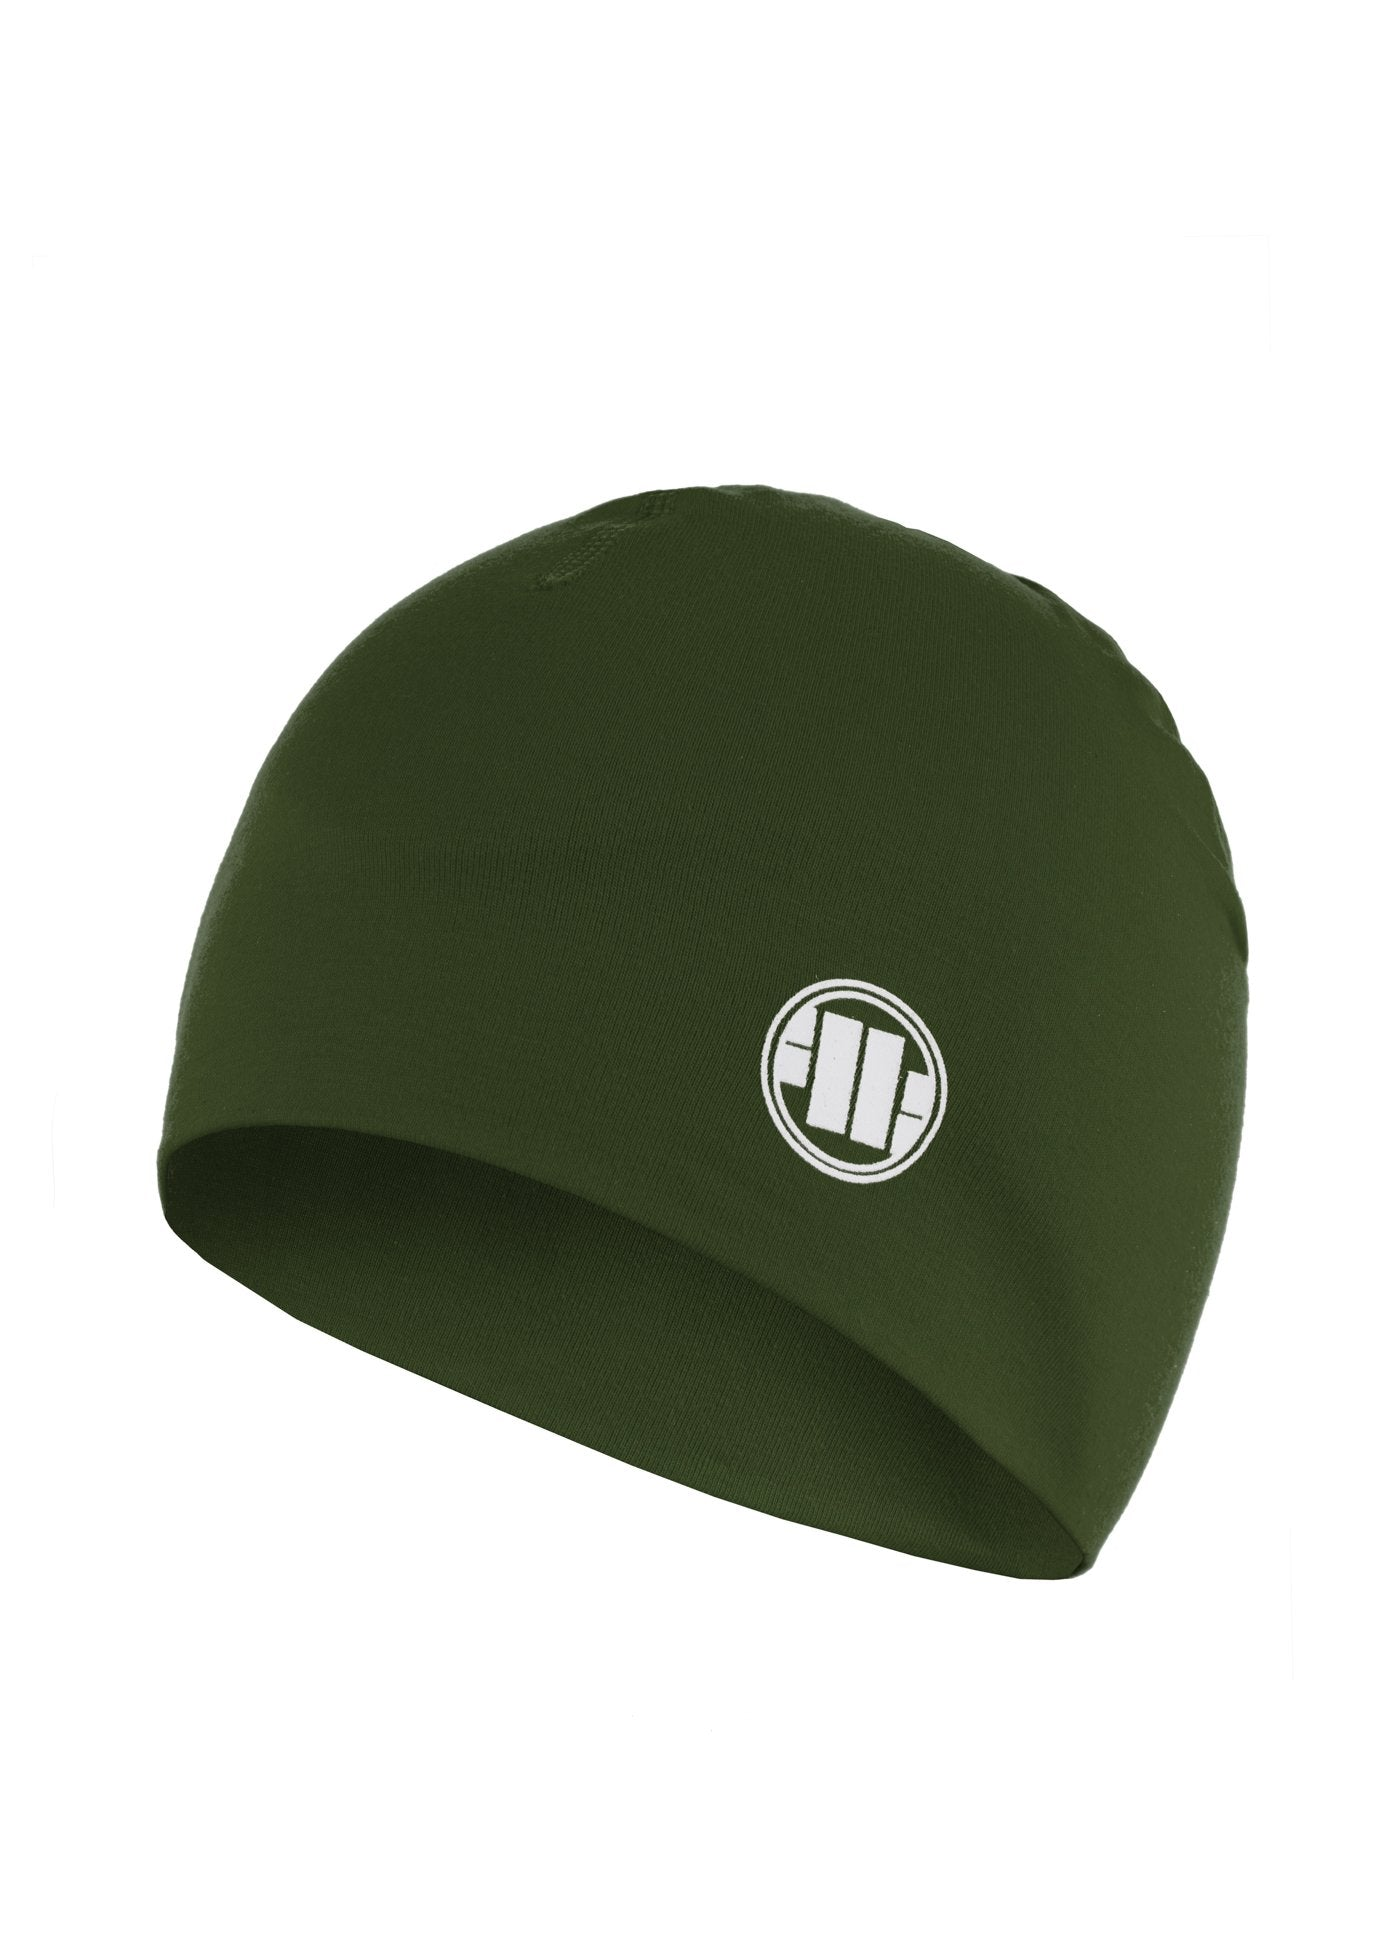 Compression Beanie SMALL LOGO Olive - Pitbull West Coast U.S.A.